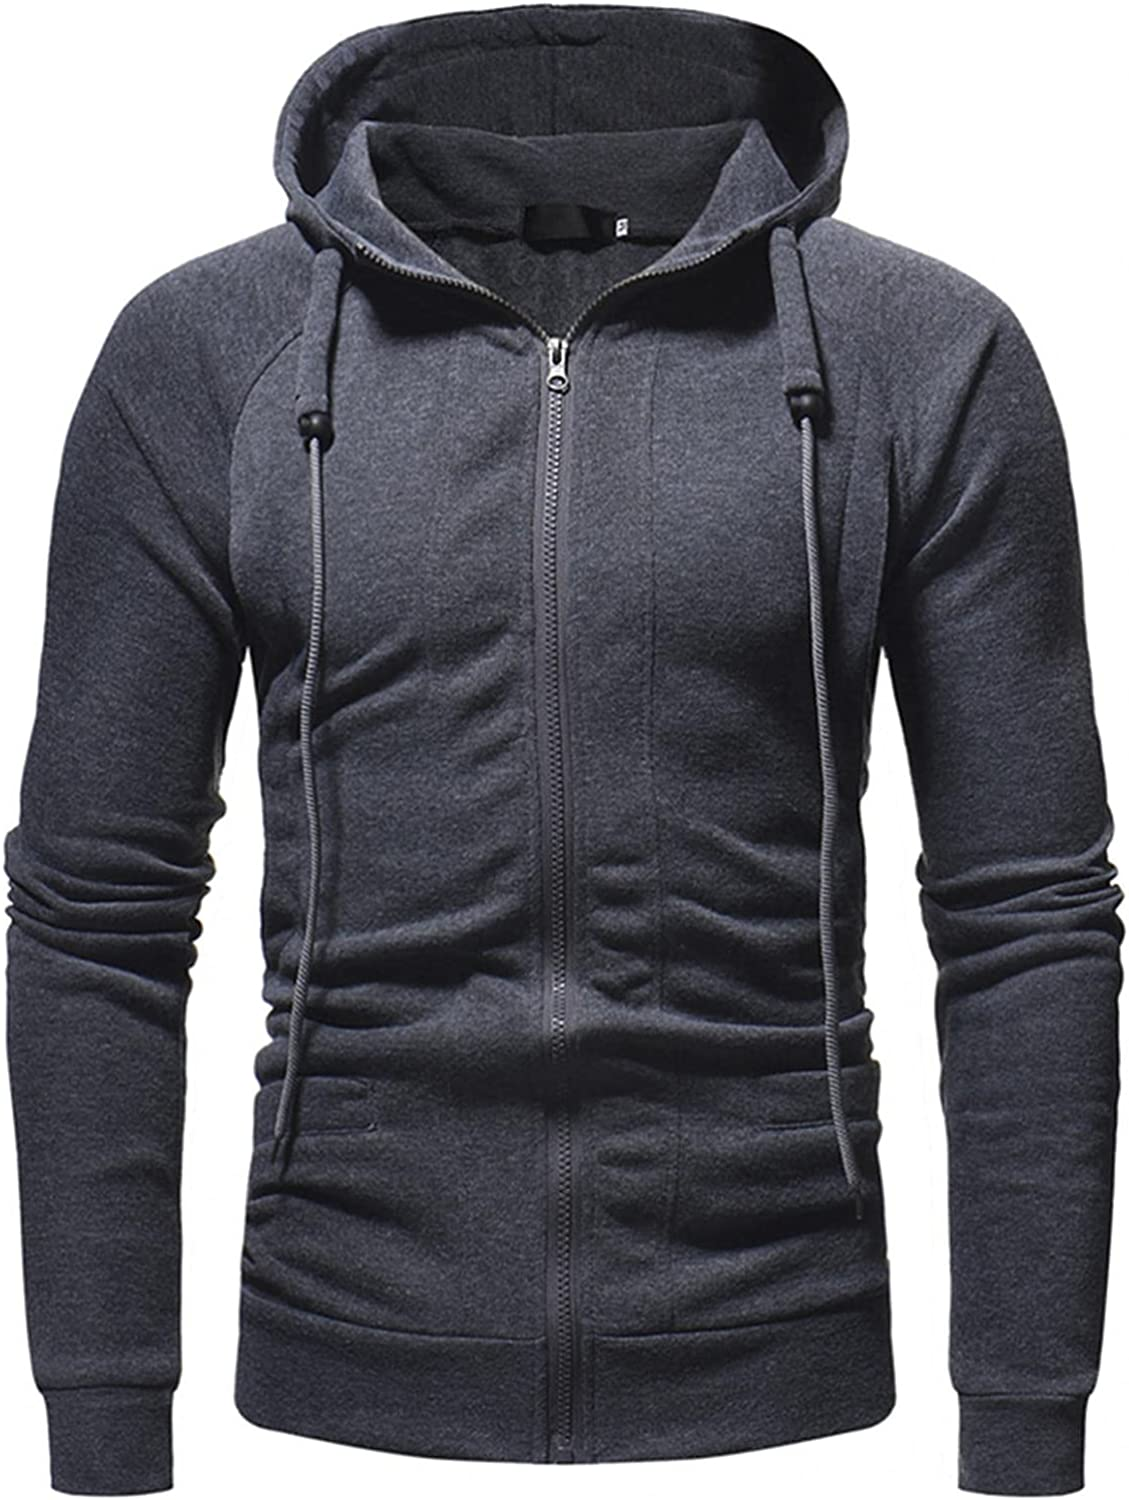 XUNFUN Mens Slim Fit Long Sleeve Classic Lightweight Full Zip Solid Color Hooded Sweatshirts Jacket Coat with Pocket